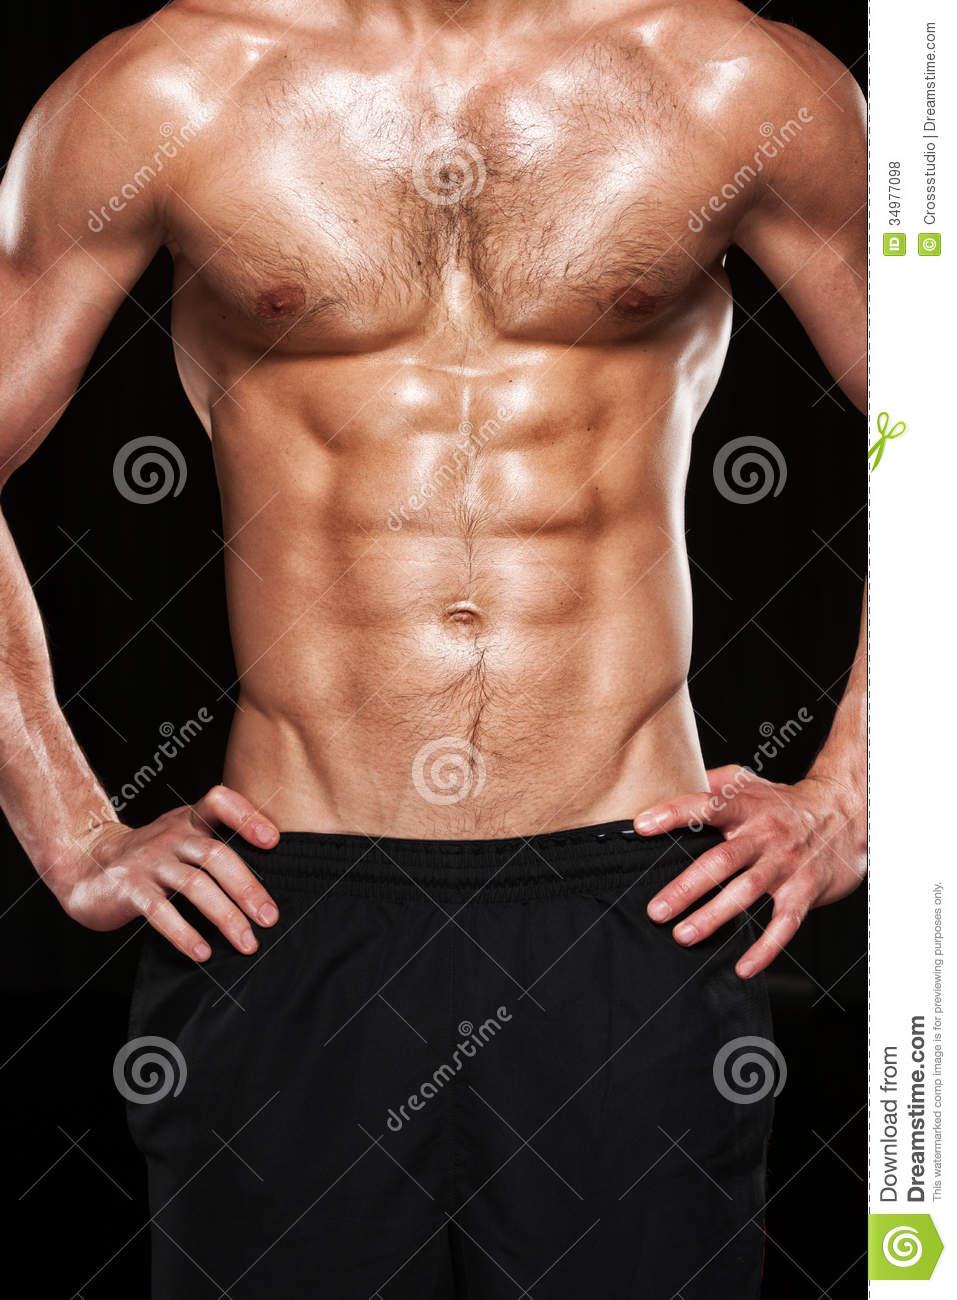 Muscular Male Torso Stock Photo Image Of Abdominal 34977098